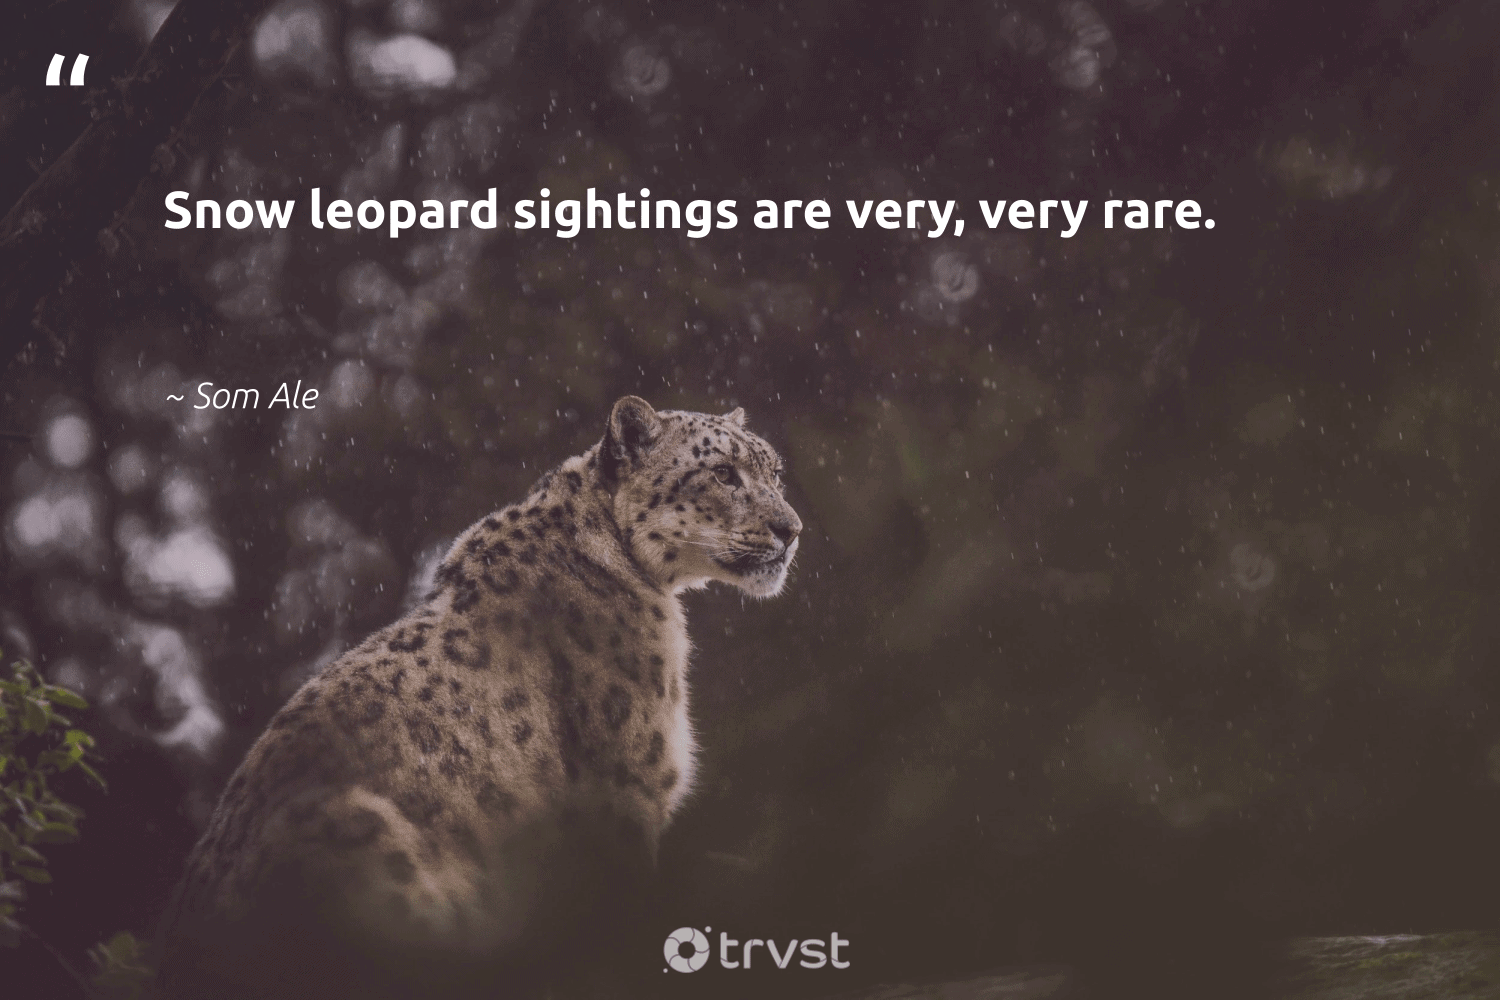 """""""Snow leopard sightings are very, very rare.""""  - Som Ale #trvst #quotes #snow #leopard #winter #biodiversity #volunteer #ecoconscious #extremeweather #wild #climatechange #bethechange"""